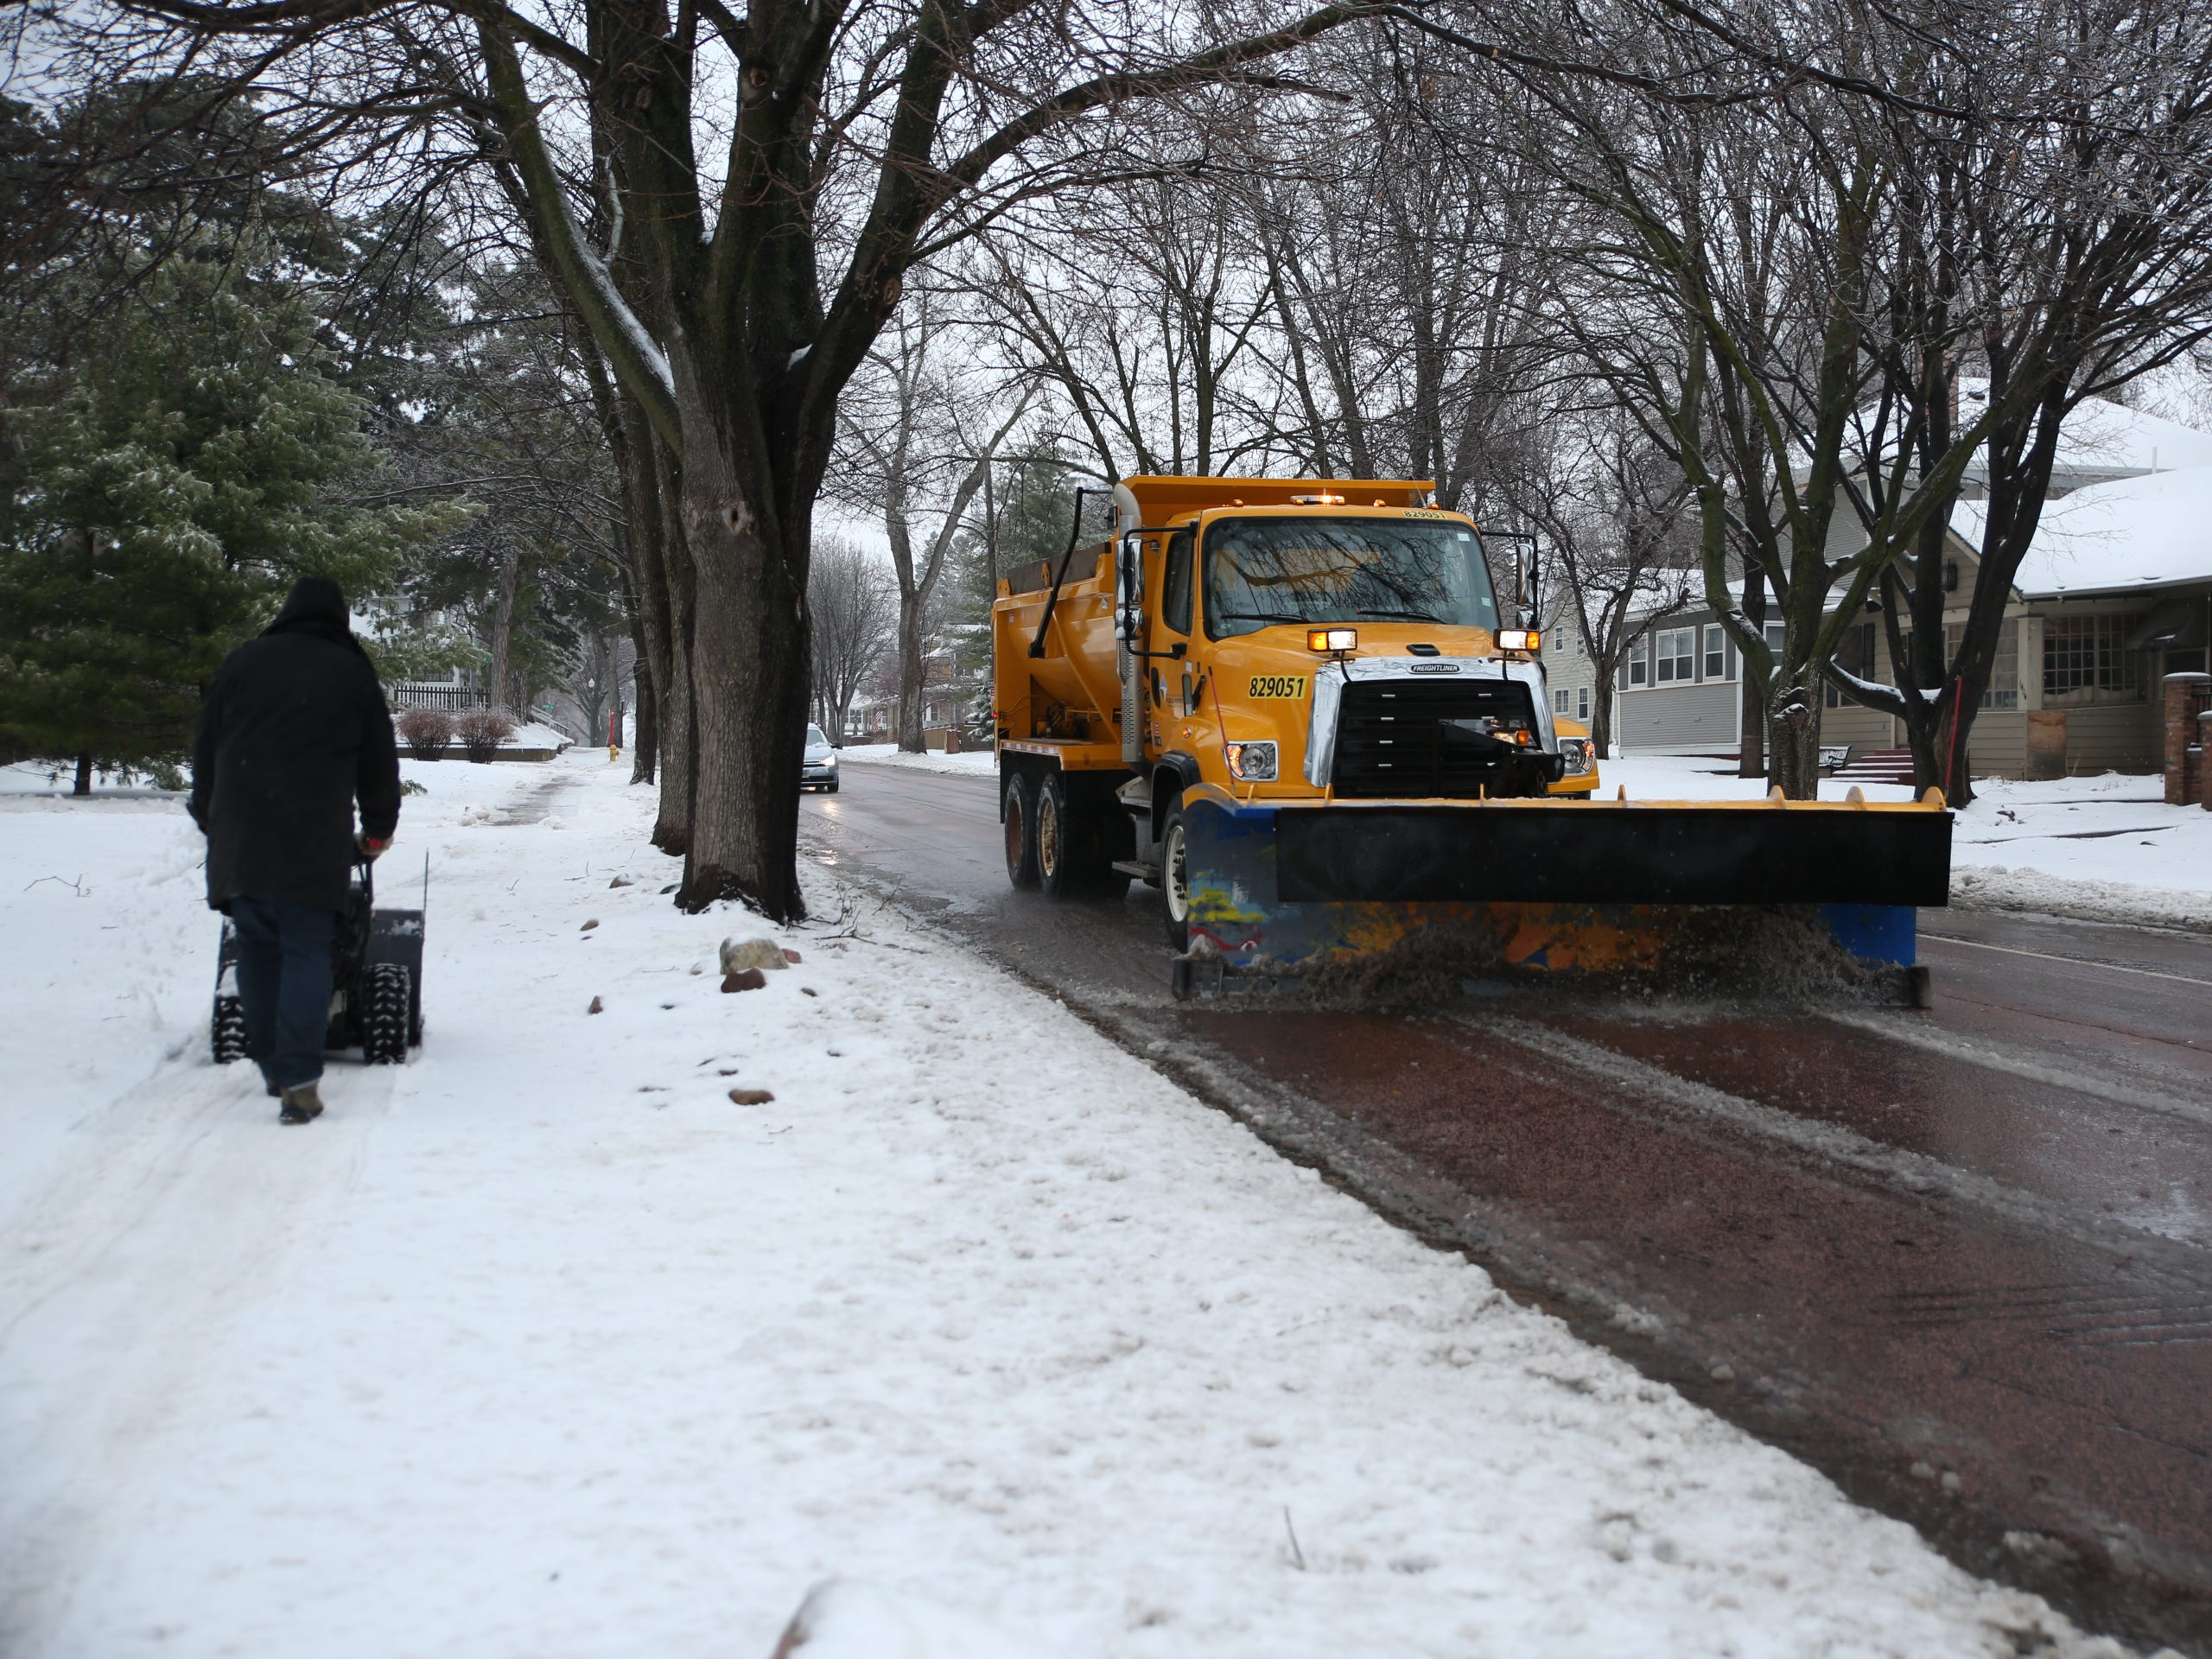 A snow plow runs through Phillips Avenue in Sioux Falls on Thursday, April 11 after a spring blizzard. The blizzard featured rain, sleet, snow and ice.